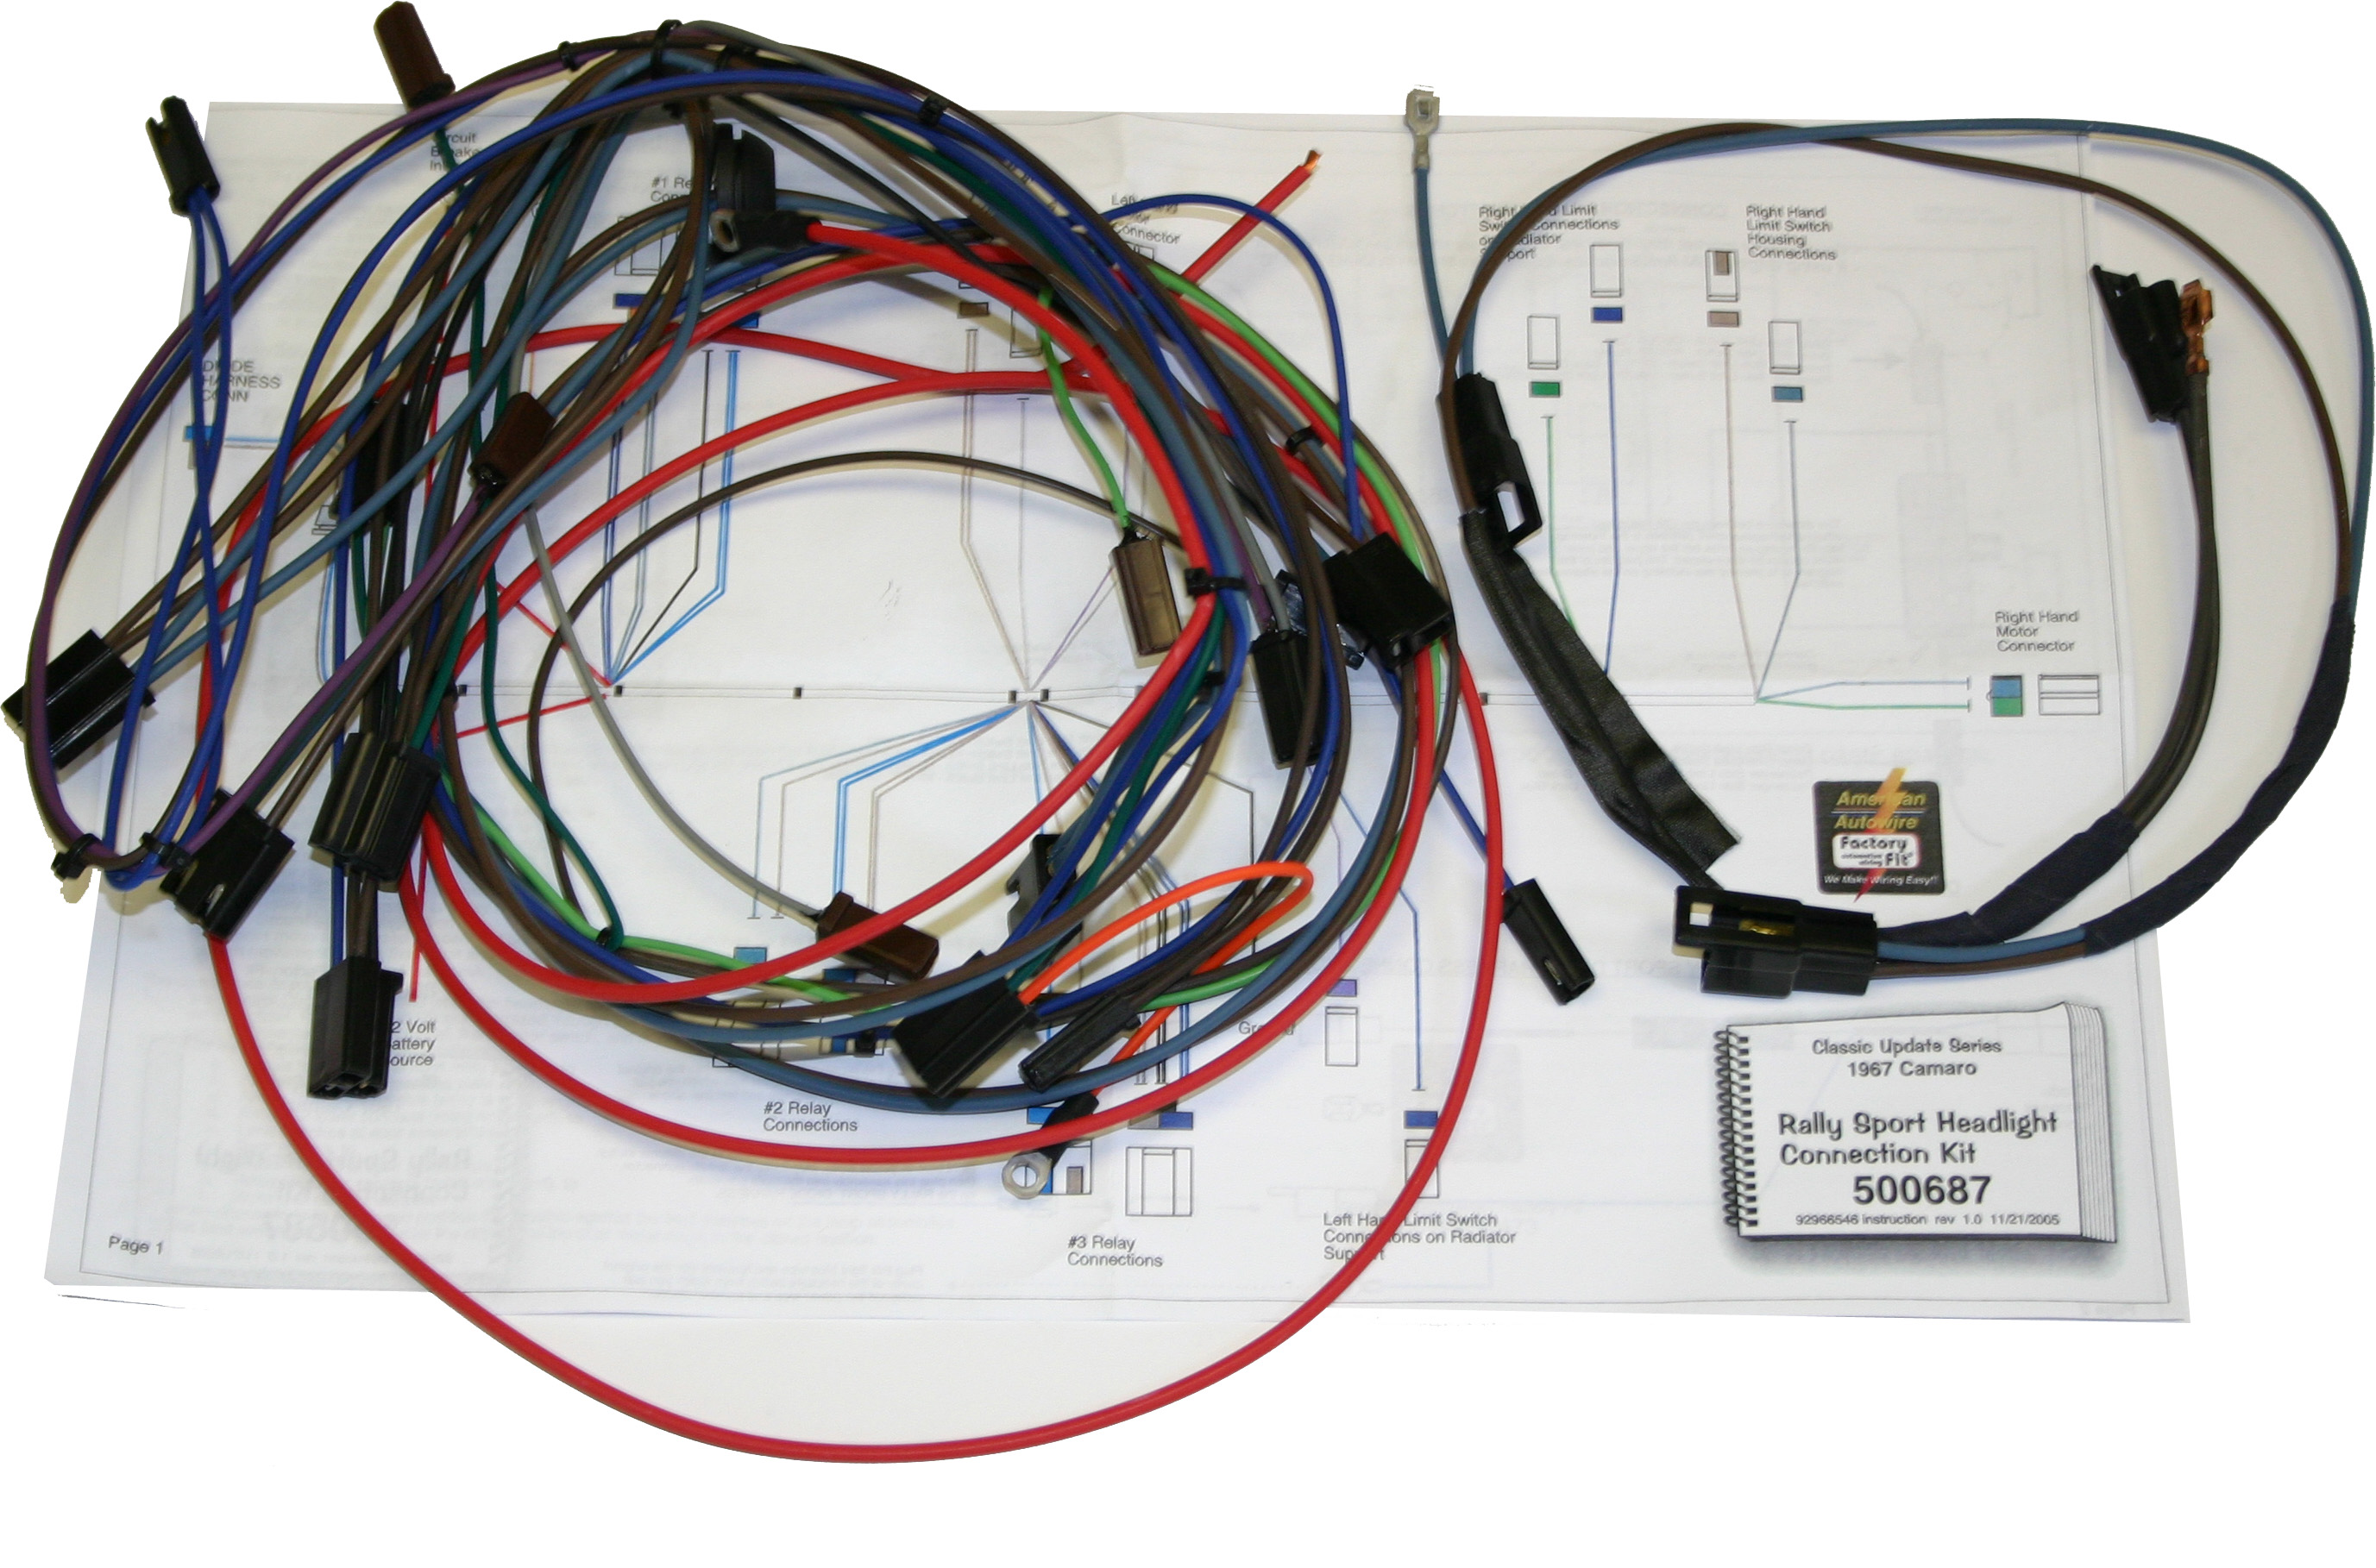 Sensational Ls1 Painless Wiring Kits Wiring Diagram Wiring 101 Swasaxxcnl